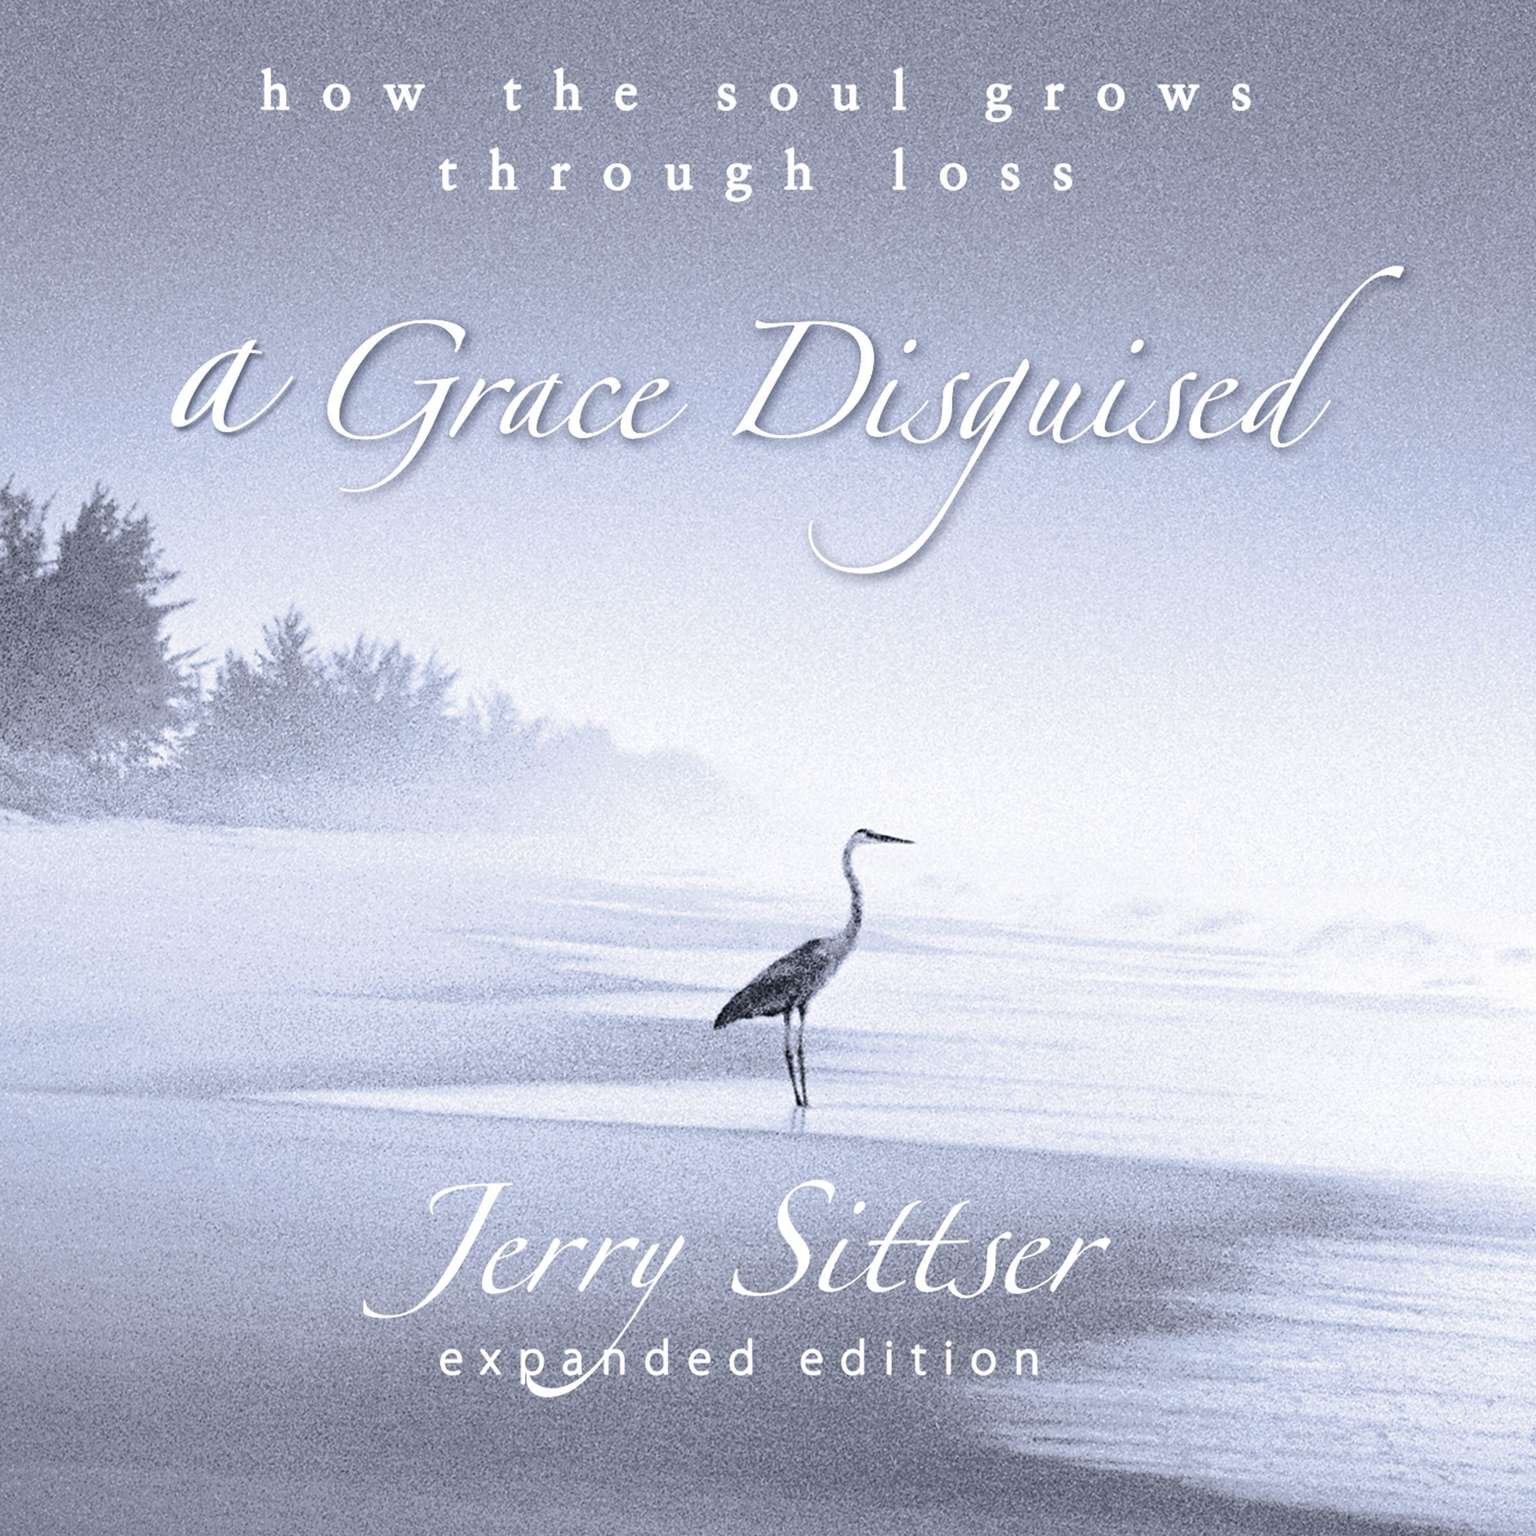 Printable A Grace Disguised: How the Soul Grows through Loss Audiobook Cover Art